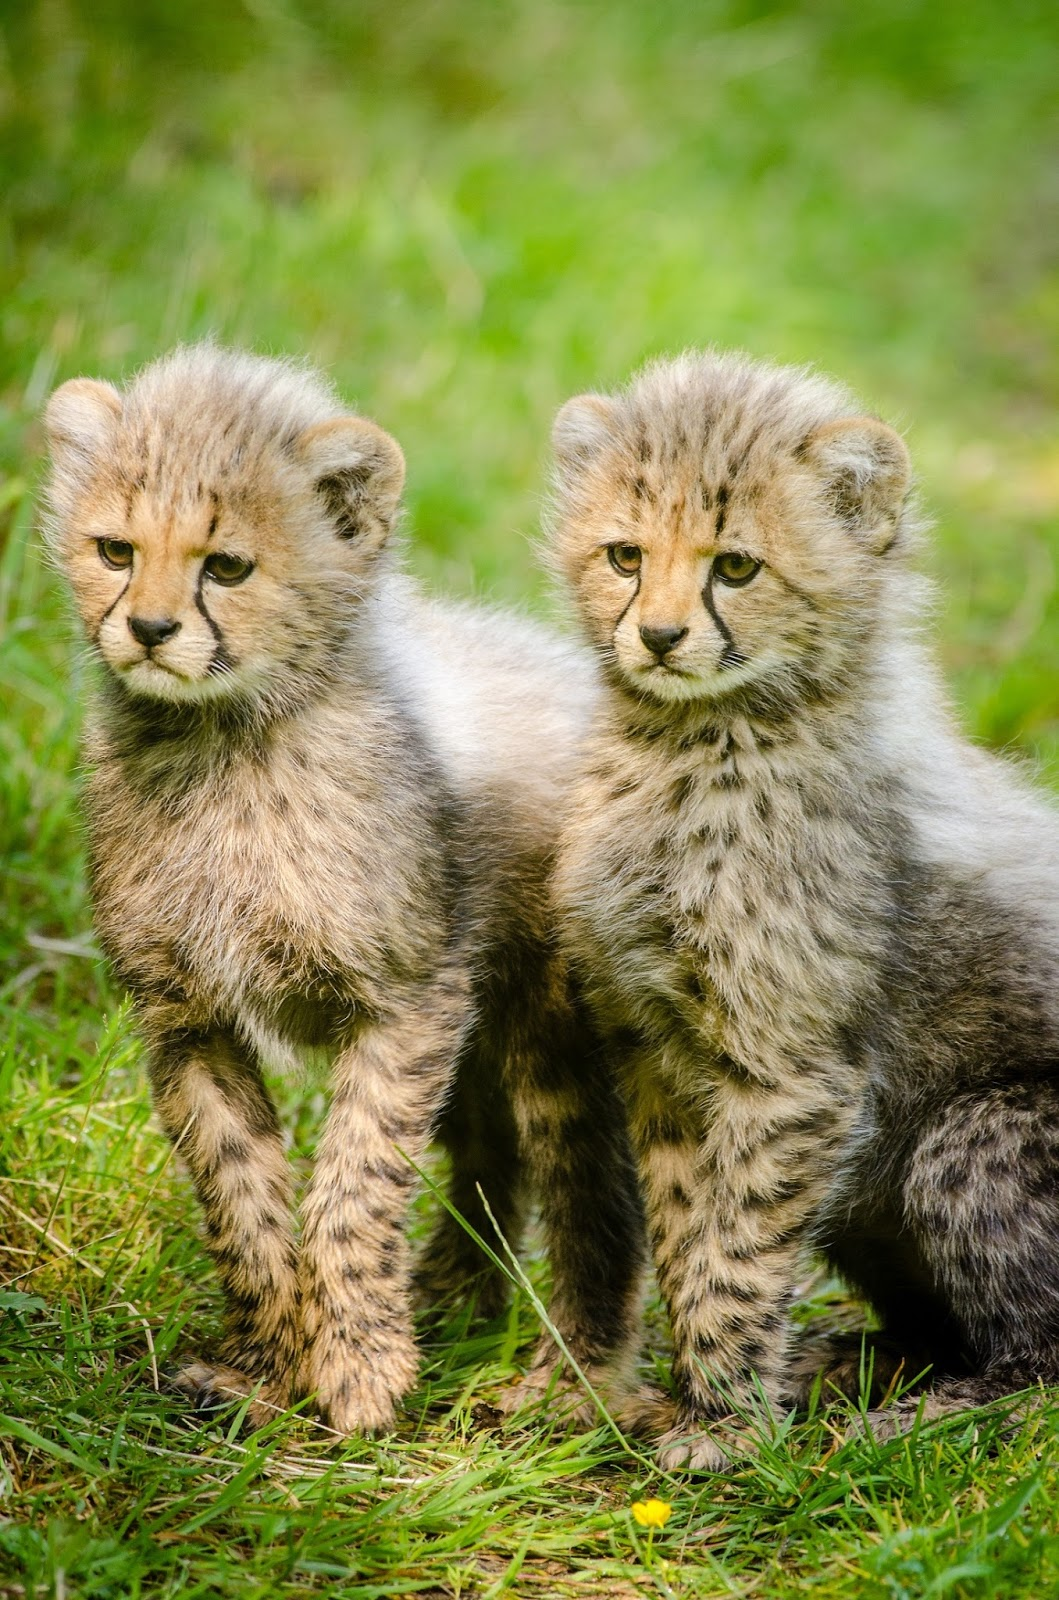 Picture of cheetah cubs.